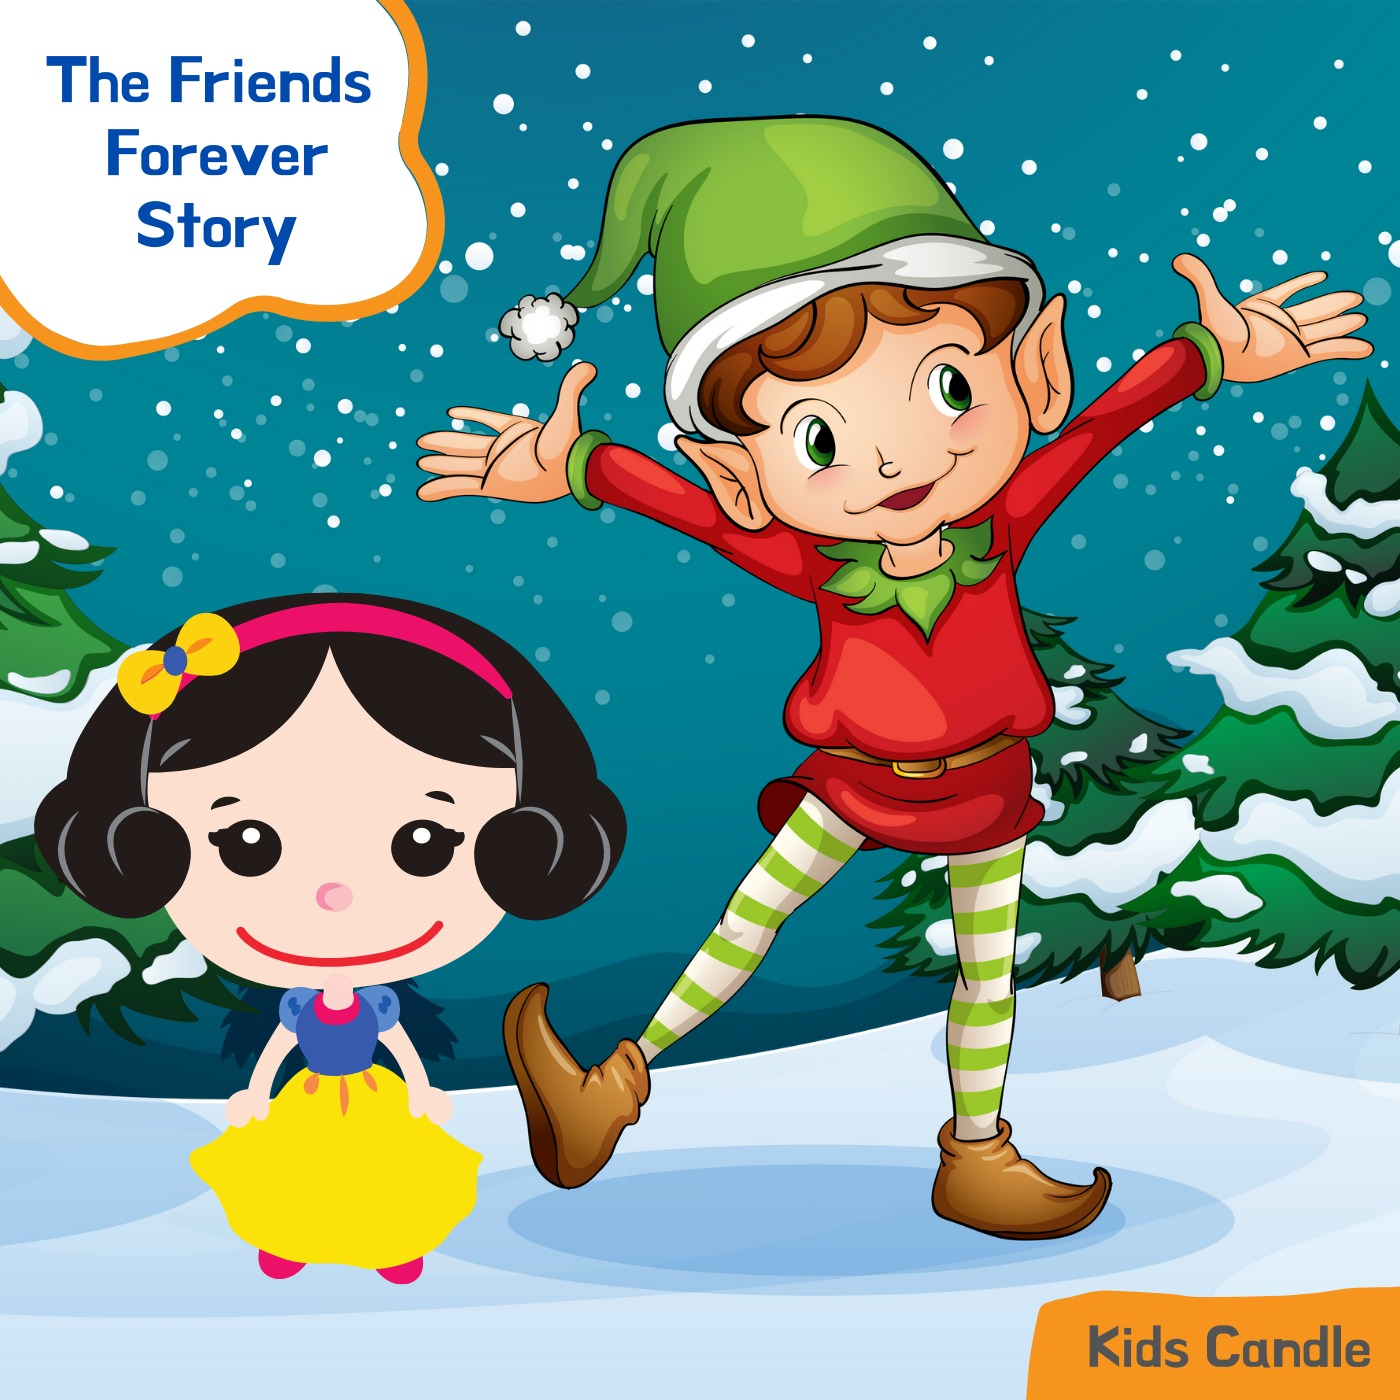 Snow White and Seven Dwarfs: The Friends Forever Story